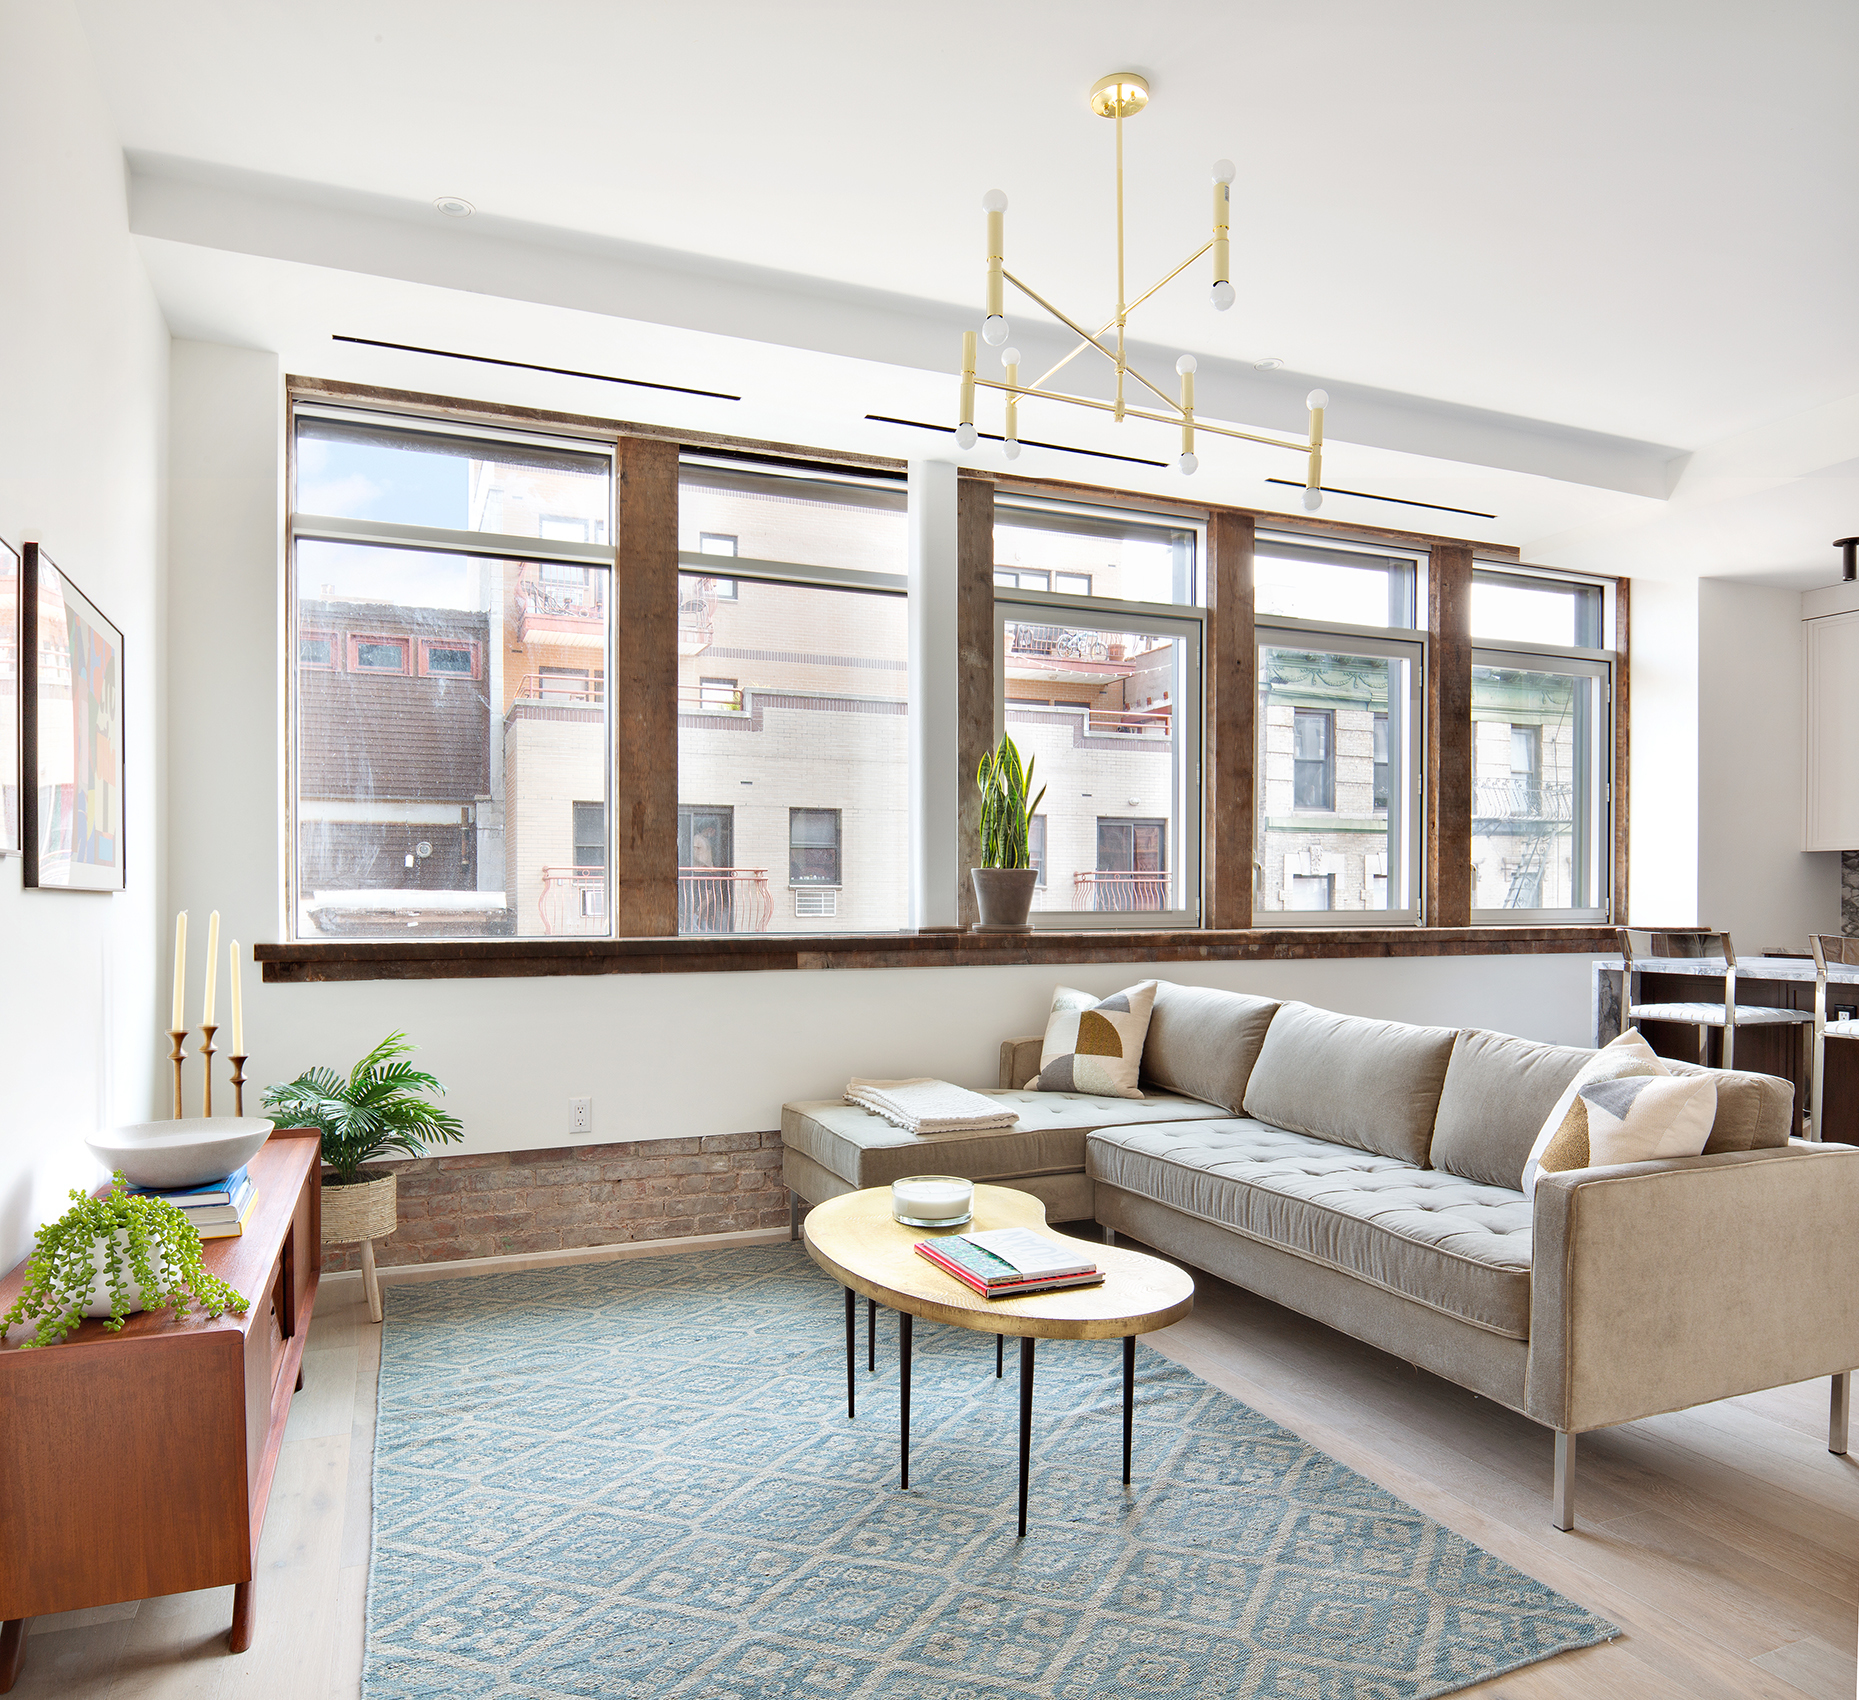 IMMINENT OCCUPANCY  HIGH CEILINGS, EXPOSED BRICK, EACH HOME ONE-OF-A-KIND!  A brand new duplex penthouse boasting a duo of private outdoor spaces, this stunning 3-bedroom, 2-bathroom home is a seamless blend of modern sophistication and traditional Lower East Side charm. Features of the apartment include beautiful wide plank light oak floors, high ceilings, custom built-out closets, a keyless entry door, oversized windows, a convenient in-unit Bosch washer/dryer, a balcony, and a private 262 sq. ft. terrace with a Napolean freestanding grill perfect for al fresco dining, sun lounging, or creating a lush urban oasis.  A welcoming foyer and gallery lead into an open-concept living room, dining room, and kitchen saturated with northeastern light. The living and dining spaces lead out onto a spacious terrace, while the kitchen is equipped with an eat-in peninsula, natural stone countertops and backsplashes, custom walnut lower cabinets, matte lacquered upper cabinets, an integrated InSinkErator, a wine fridge and high-end appliances from Wolf, Asko, and Sub-Zero.   The primary bedroom has a pair of reach-in closets, an attached balcony, and a windowed en-suite bathroom with double sinks, honed natural stone radiant heated floors, walls adorned with polished natural stone slabs and glossy ceramic subway tiles, huge walk-in rain shower, Toto toilet, towel warmer and chic Kohler and Kallista fixtures. The second and third bedrooms have reach-in closets and easy access to a second full bathroom with honed natural stone radiant heated floors, white ceramic matte subway tile walls, a Toto toilet, and chic Newport Brass and Kohler fixtures.   The Library is a one-of-a-kind boutique condominium by The Horizon Group, Isaac & Stern, and Brittany Marom Interior Design. A testament to modern elegance and adaptive reuse architecture, the building incorporates the original 1905 McKim, Mead & White structure that served as the downtown branch of the New York Public Library. The buildi